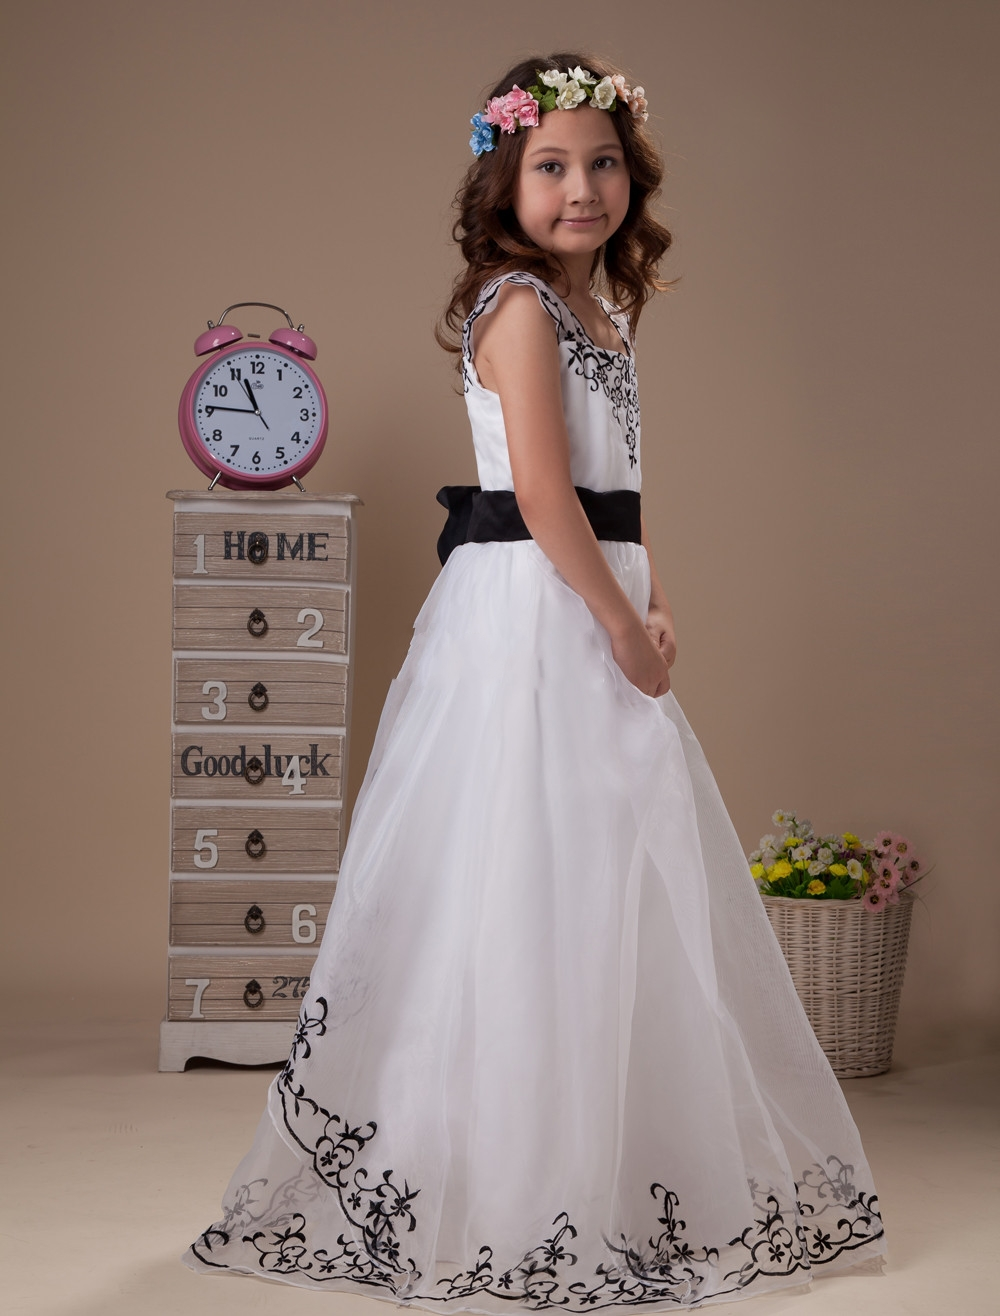 Sexy cap sleeves black white junior bridesmaid dresses embroidery sexy cap sleeves black white junior bridesmaid dresses embroidery flower girl dresses 2014 new fashion in flower girl dresses from weddings events on ombrellifo Images